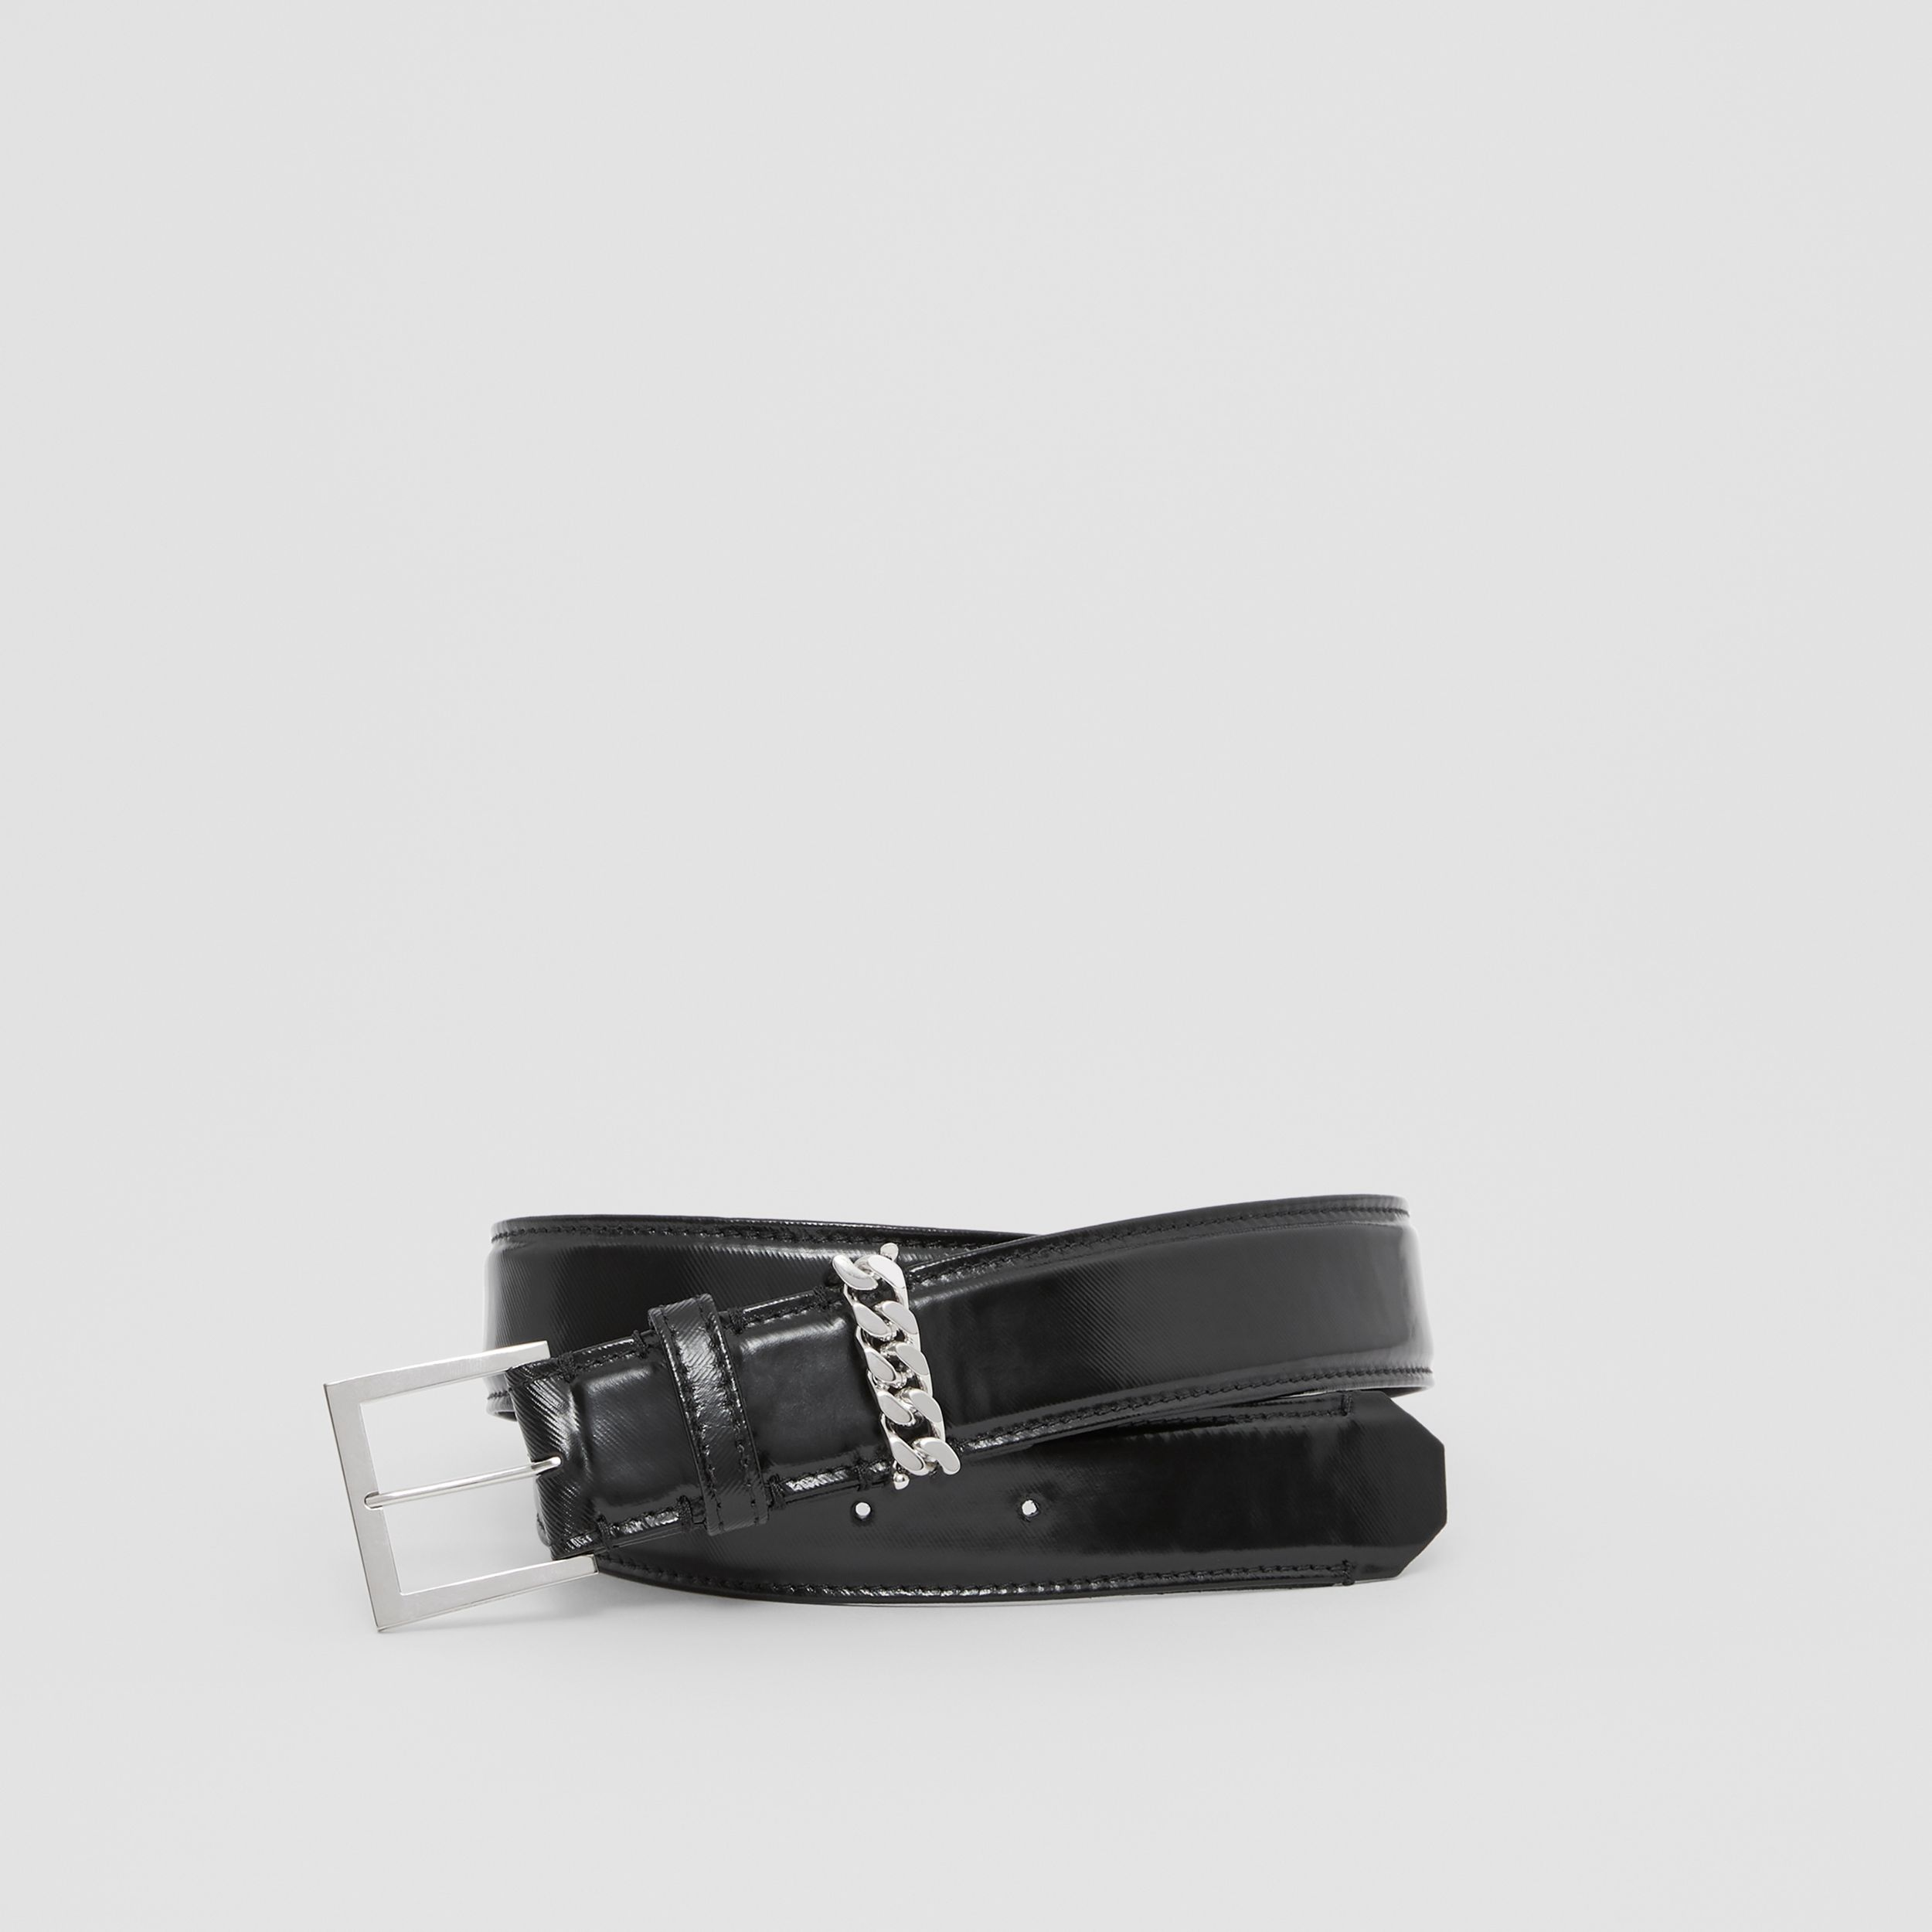 Chain Detail Horseferry Print Coated Canvas Belt in Black/palladium - Women | Burberry Australia - 1